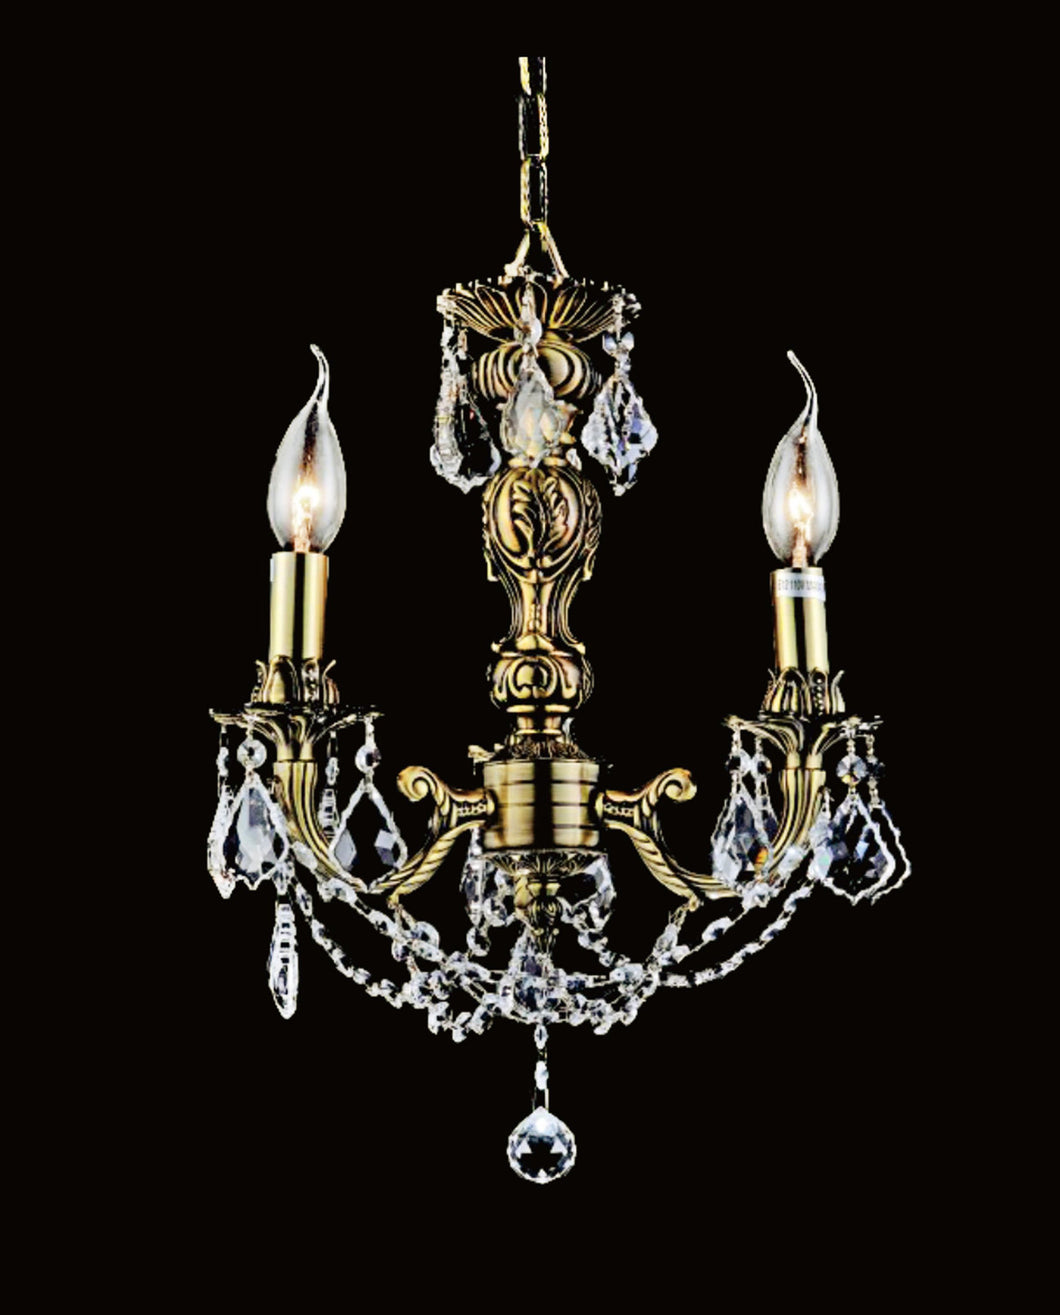 3 Light Up Chandelier with French Gold finish